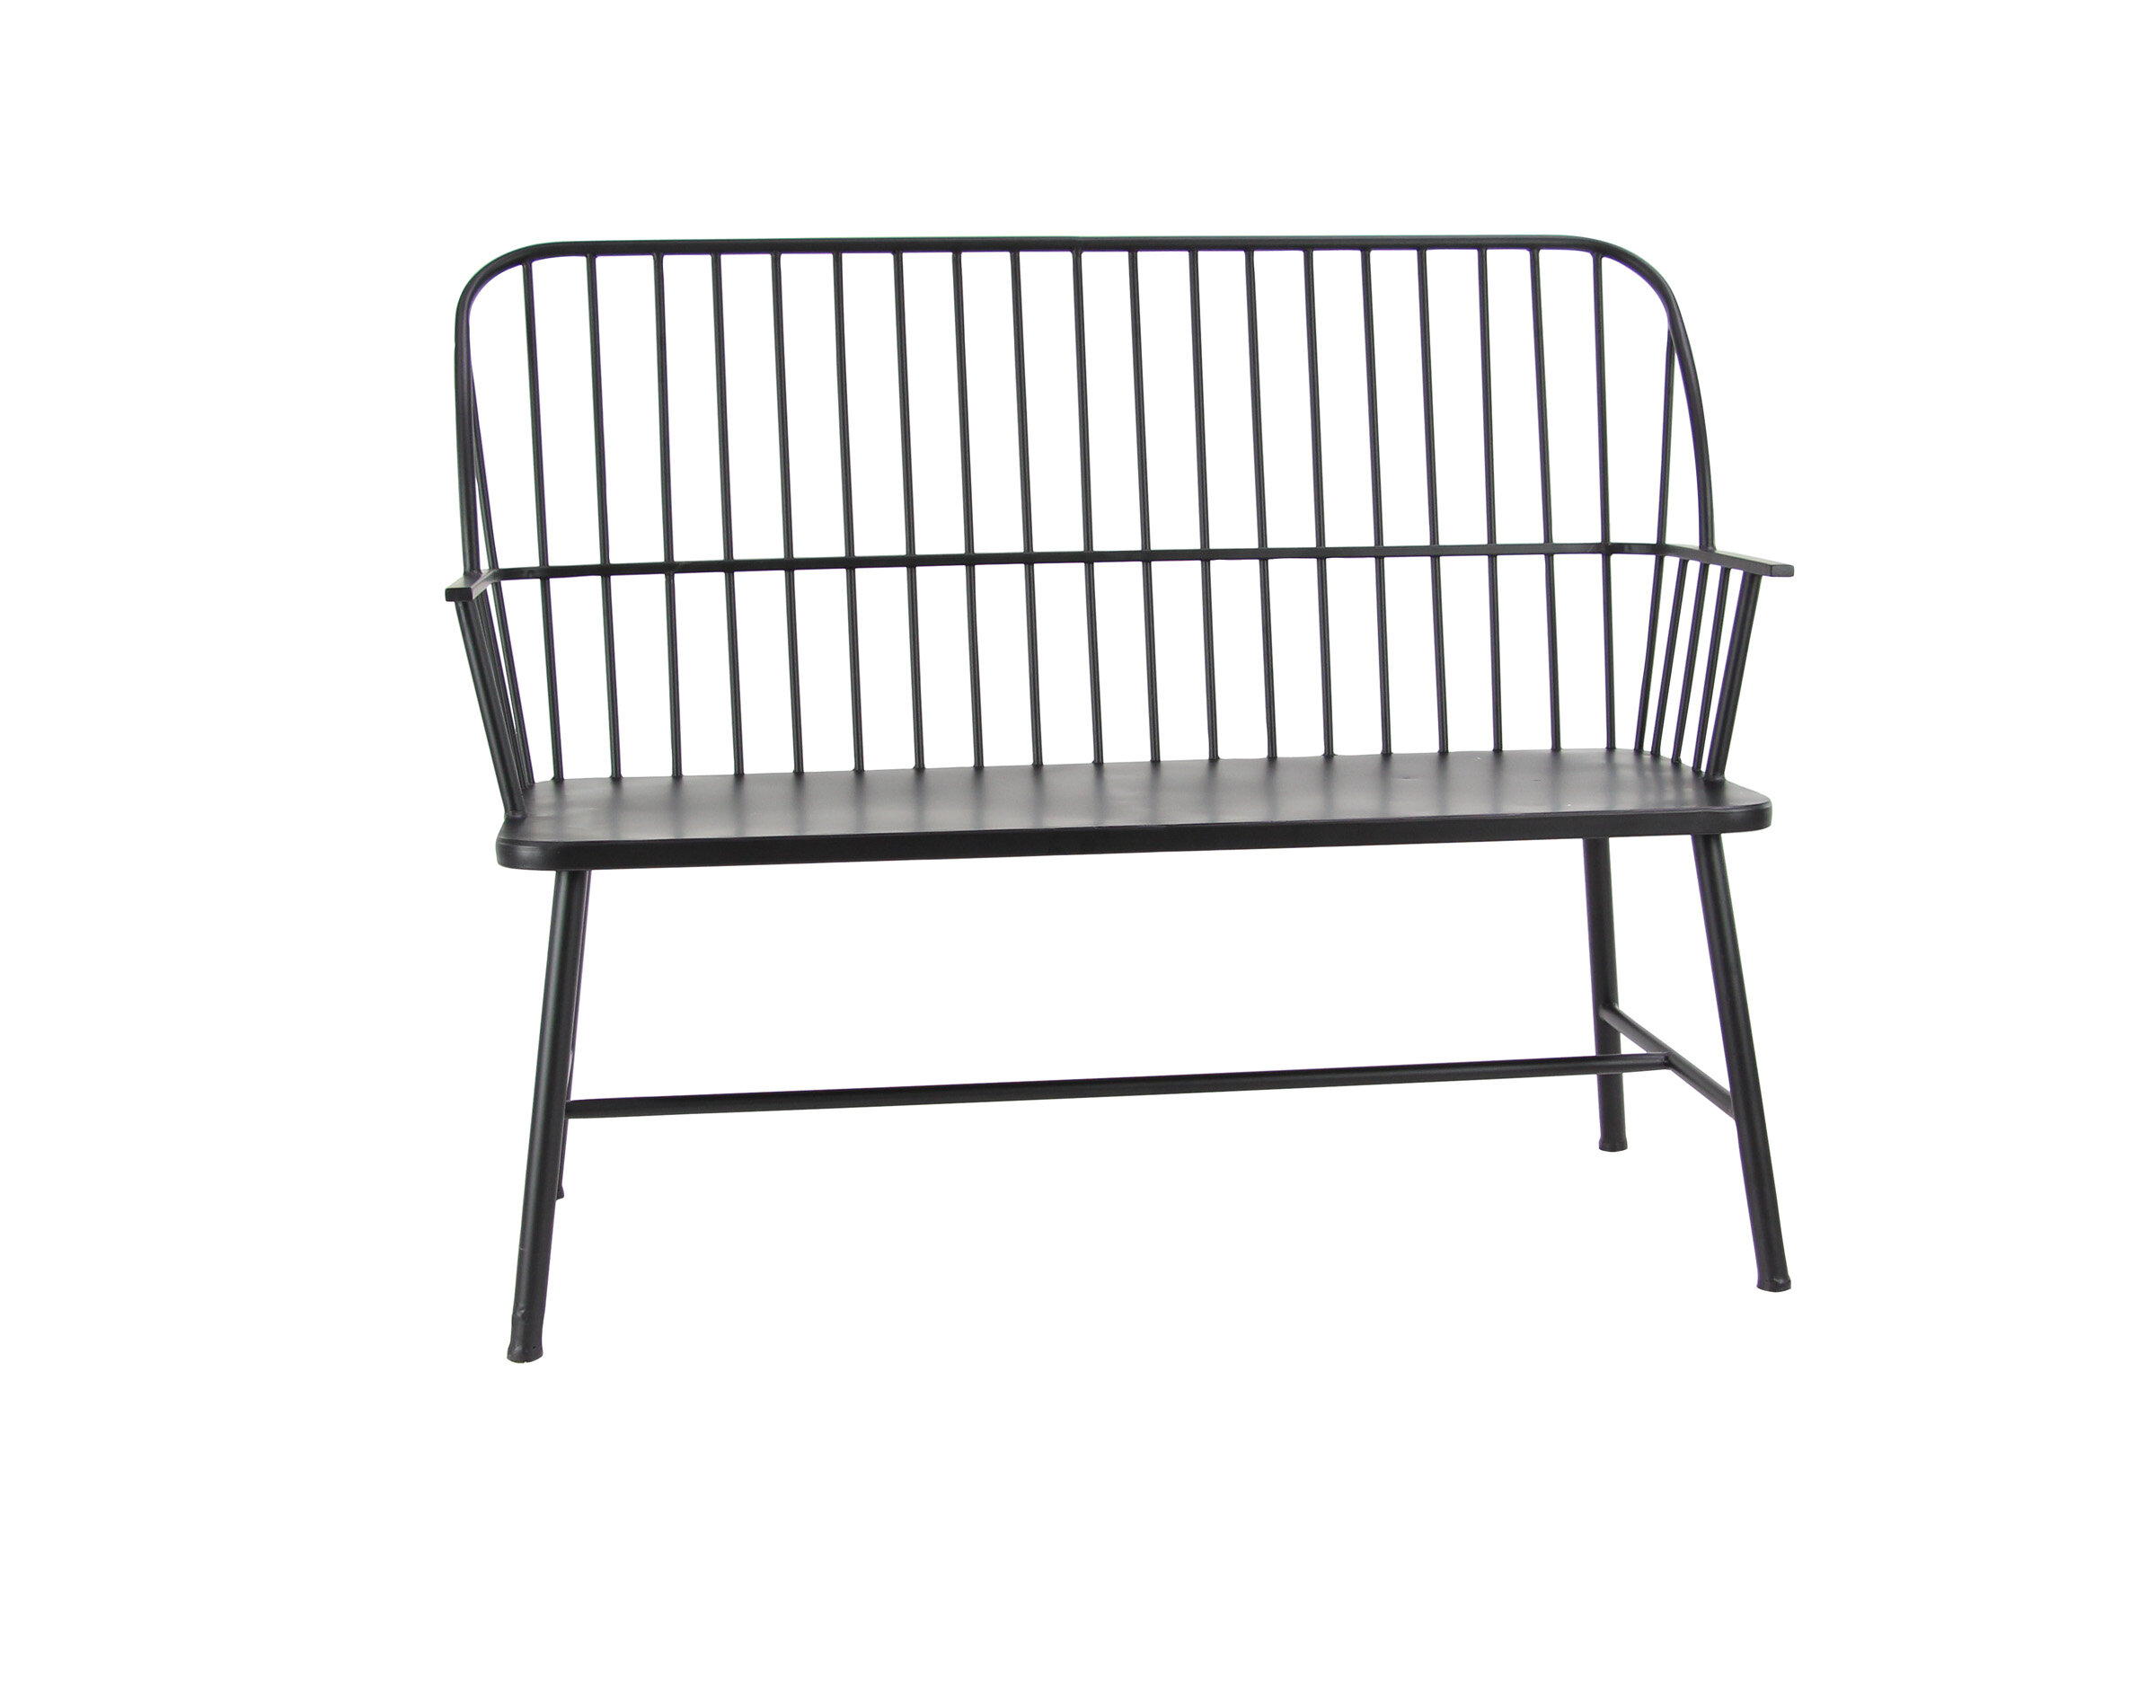 Metal Patio Benches You'Ll Love In 2020 | Wayfair Intended For Heslin Steel Park Benches (View 25 of 25)